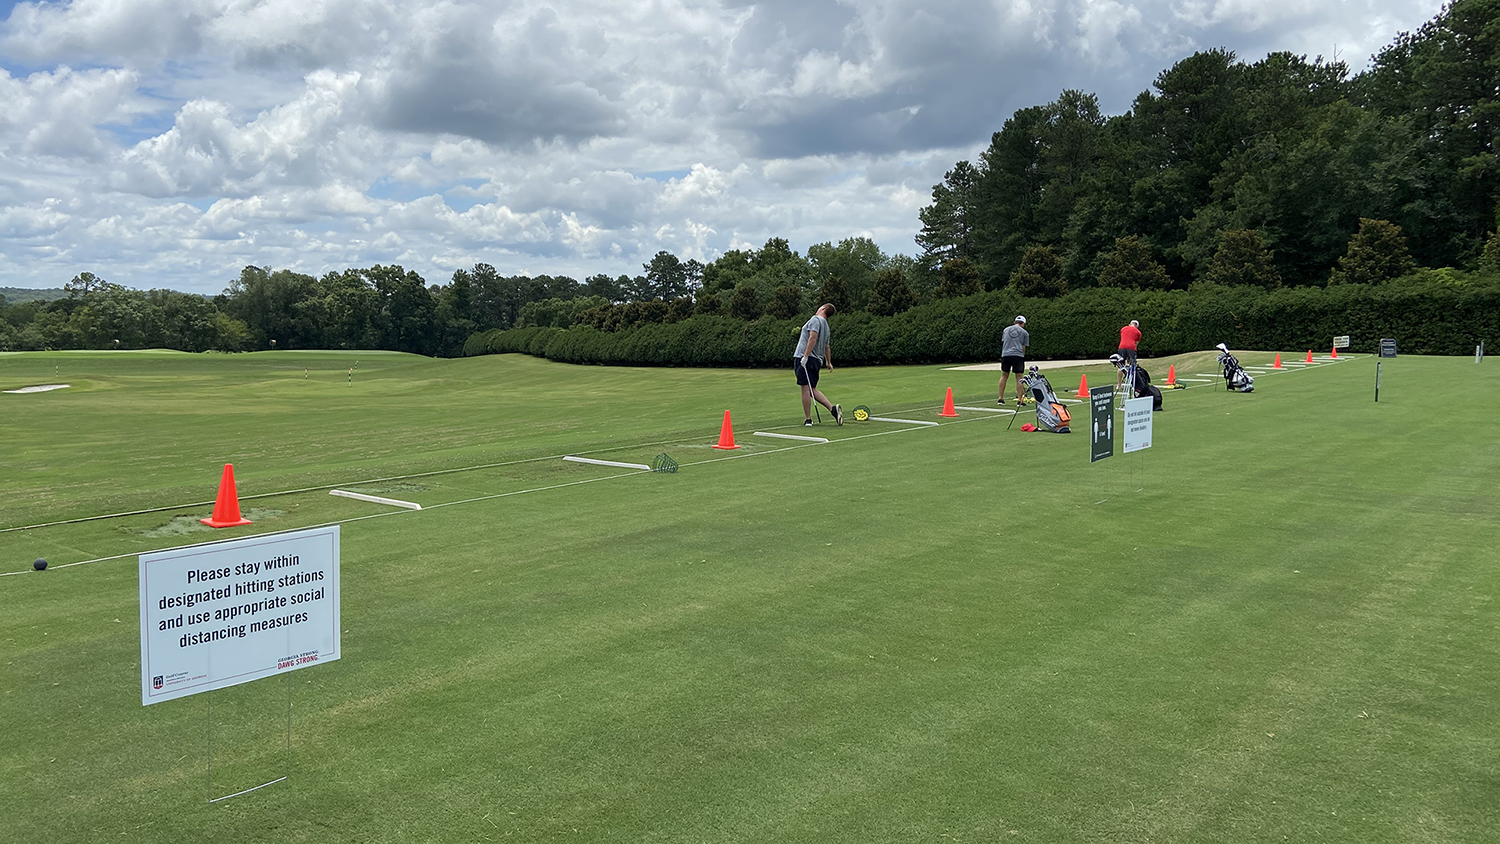 "Image of golfers at the driving range, separated into every other station by orange cones. A sign reads ""Please stay within designated hitting stations and use appropriate social distancing measures."""